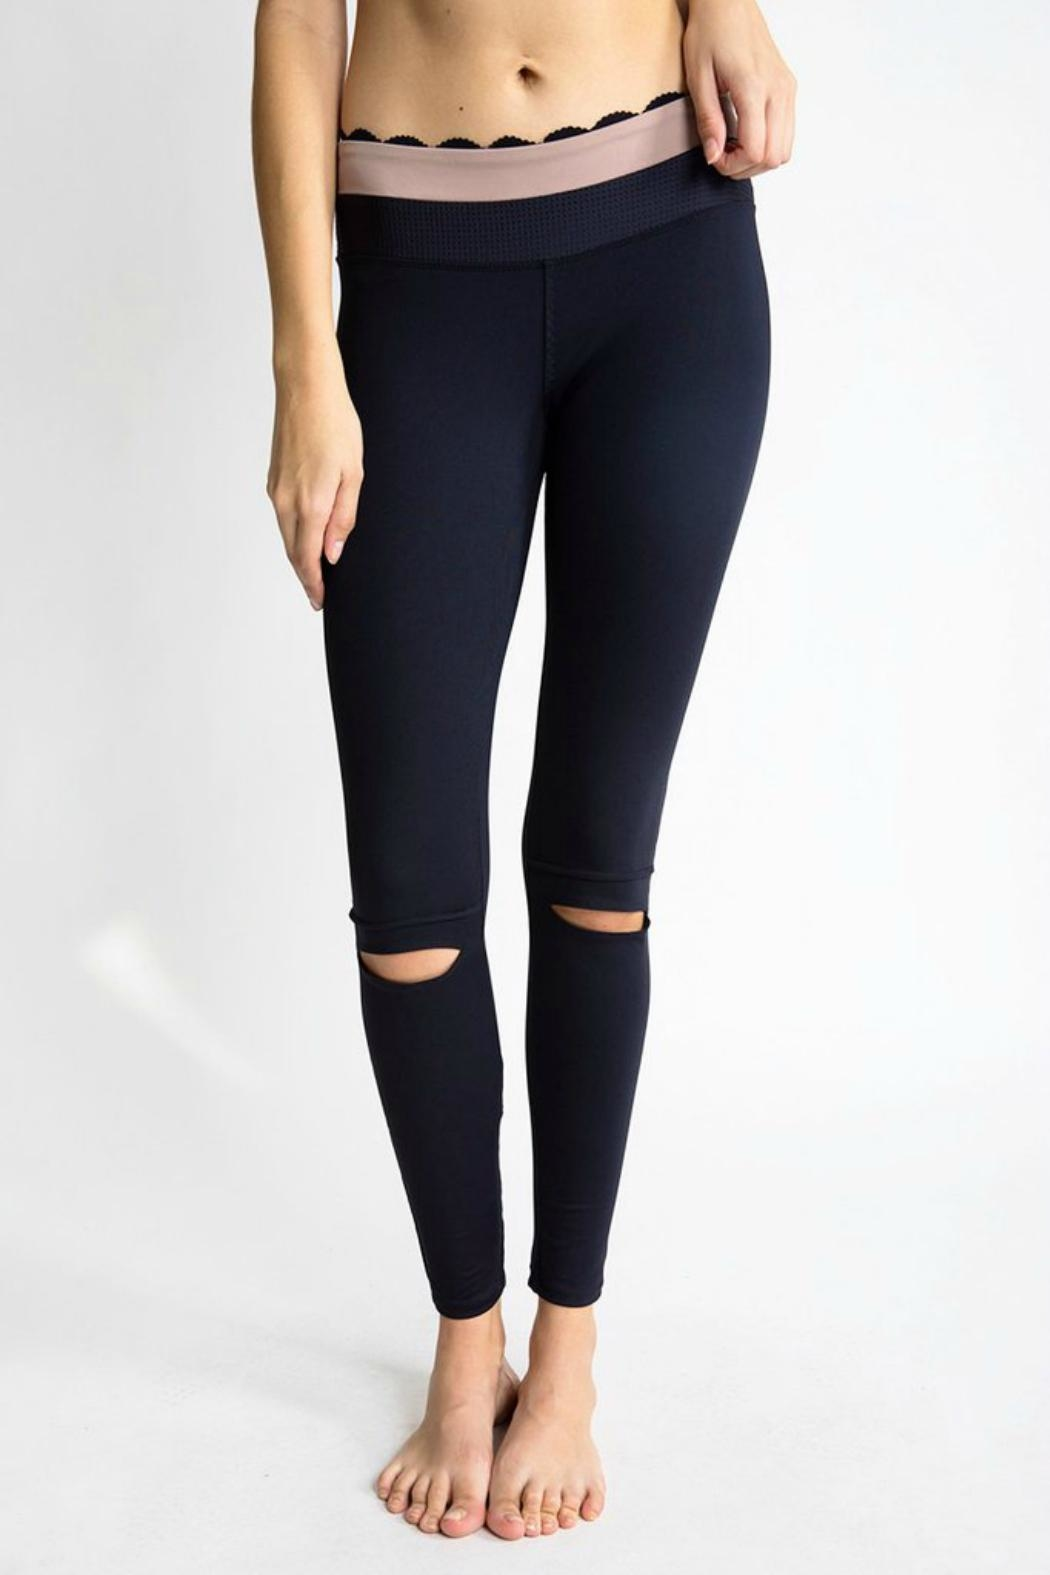 Track & Bliss Knock Out Legging - Main Image